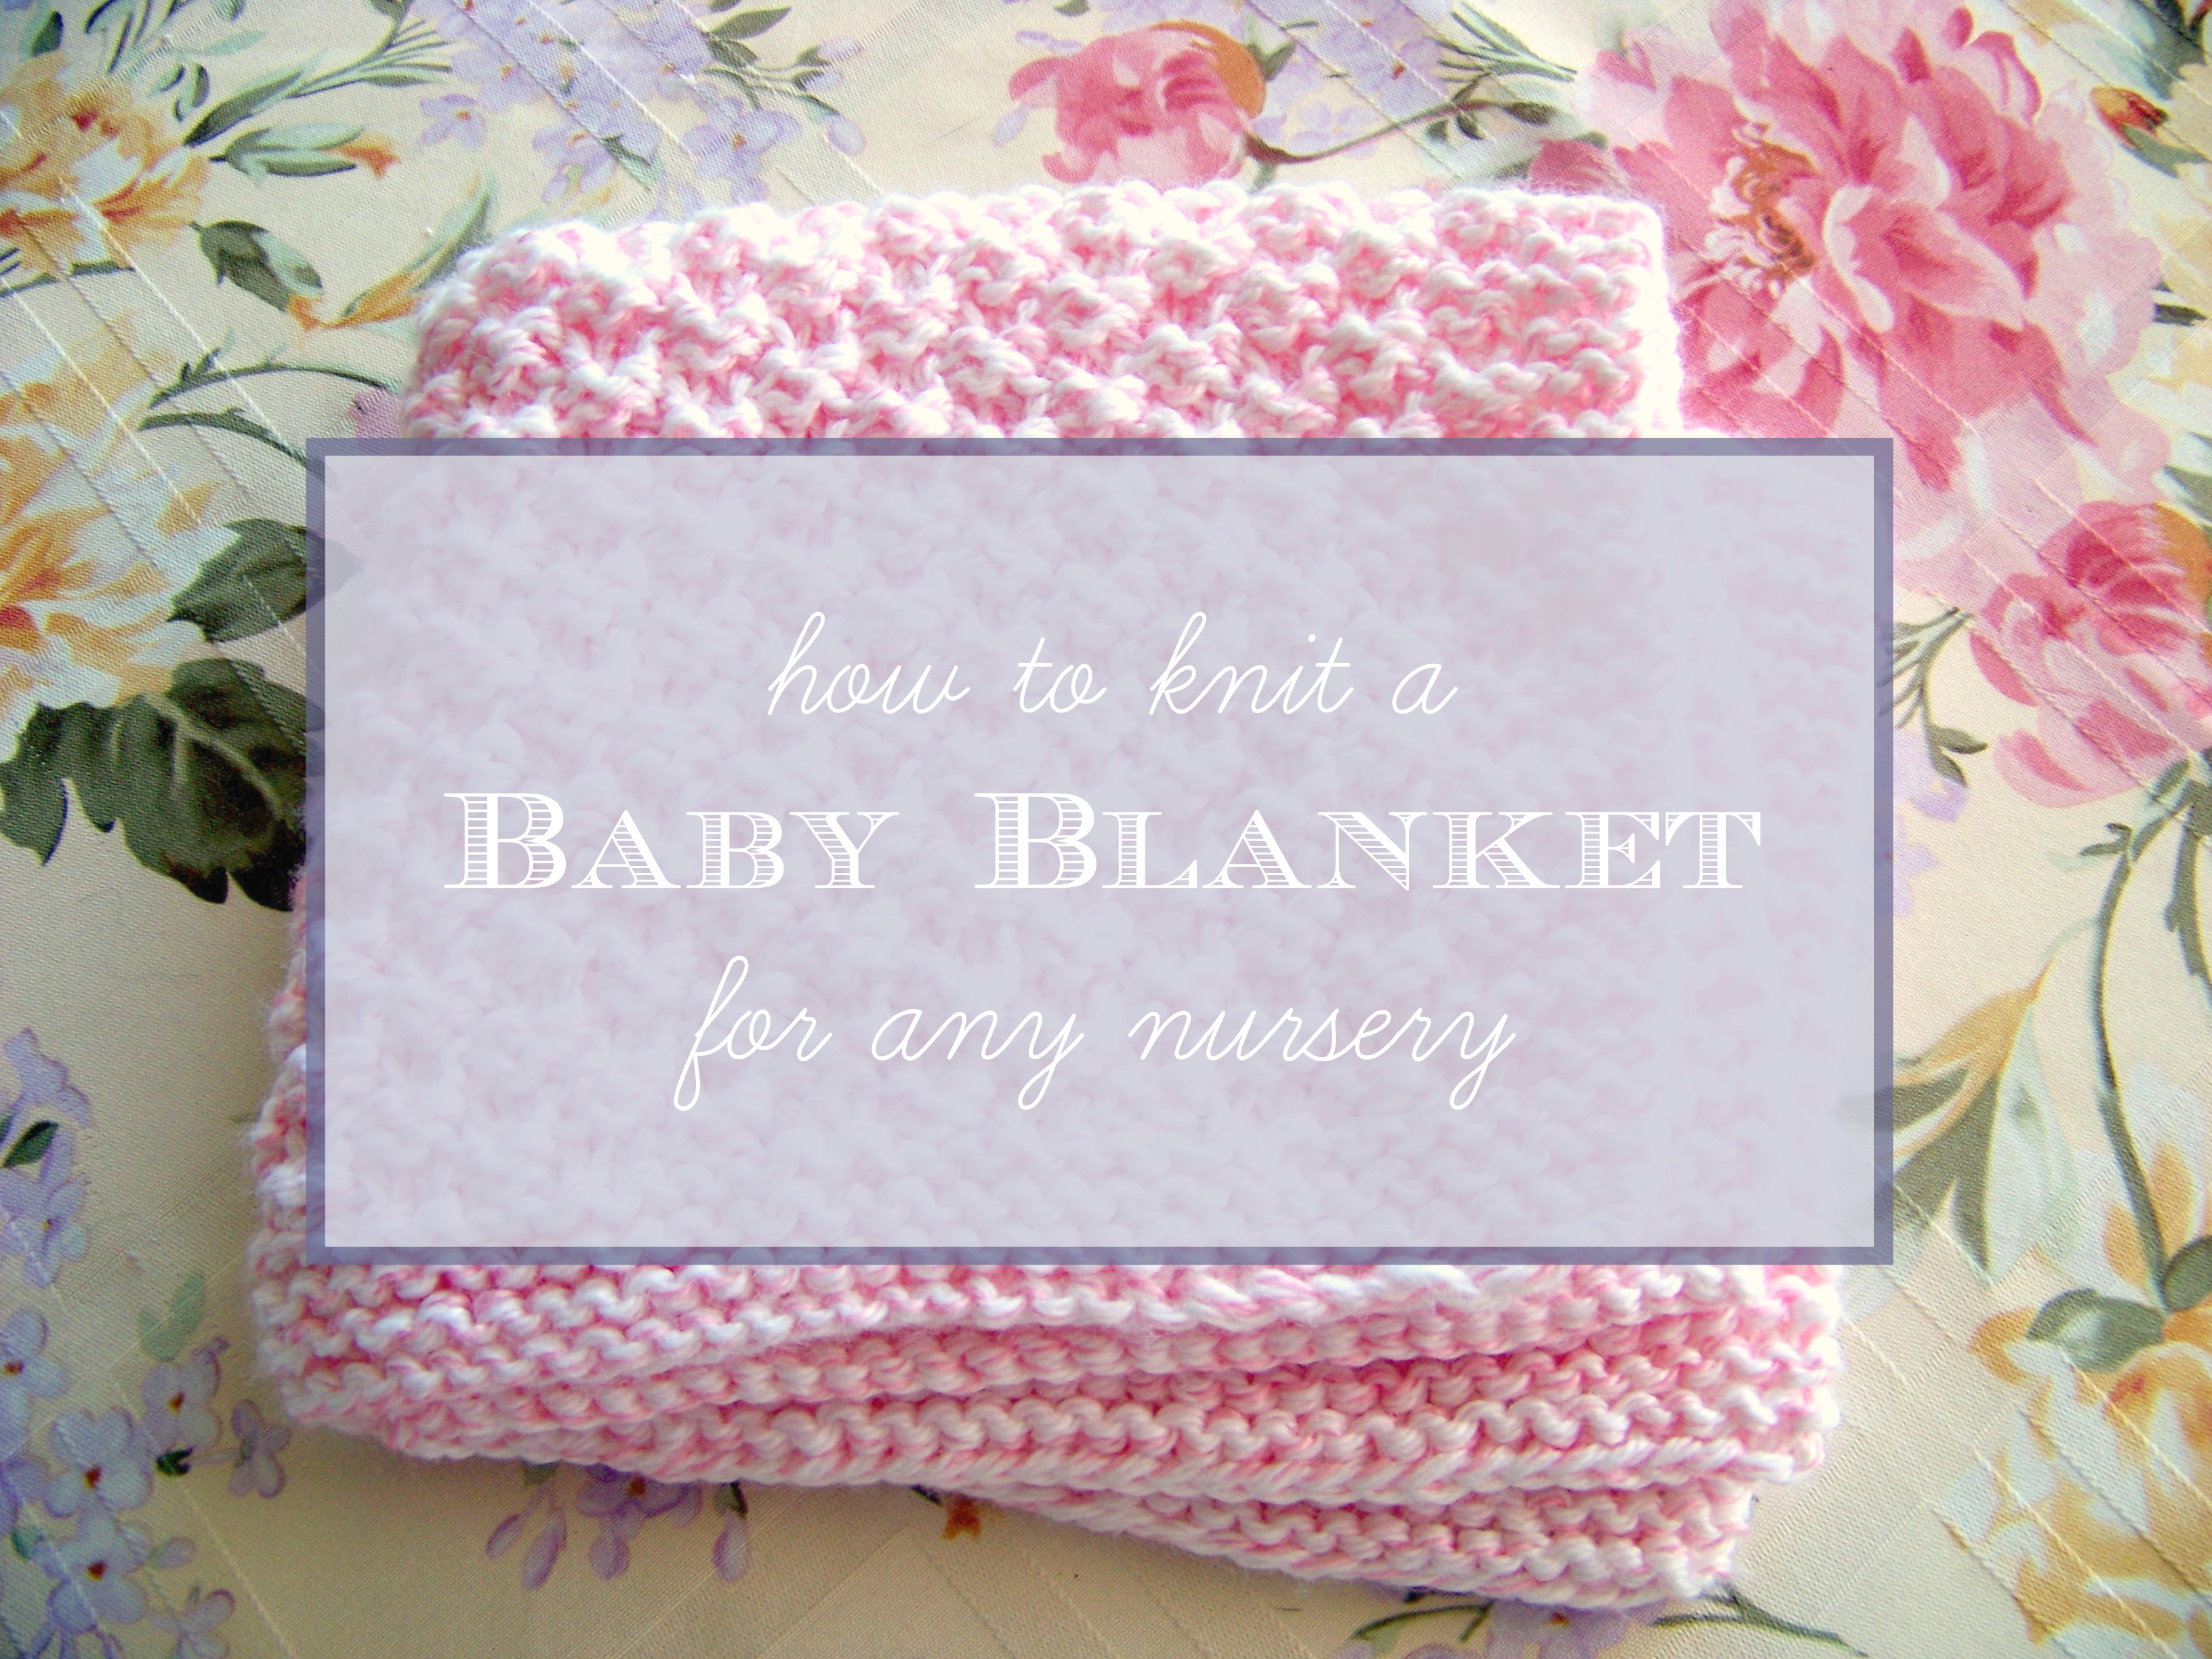 Free Easy Baby Blanket Knitting Patterns For Beginners Easy Knitting Patterns For Ba Blankets Beginners Pattern Beginner